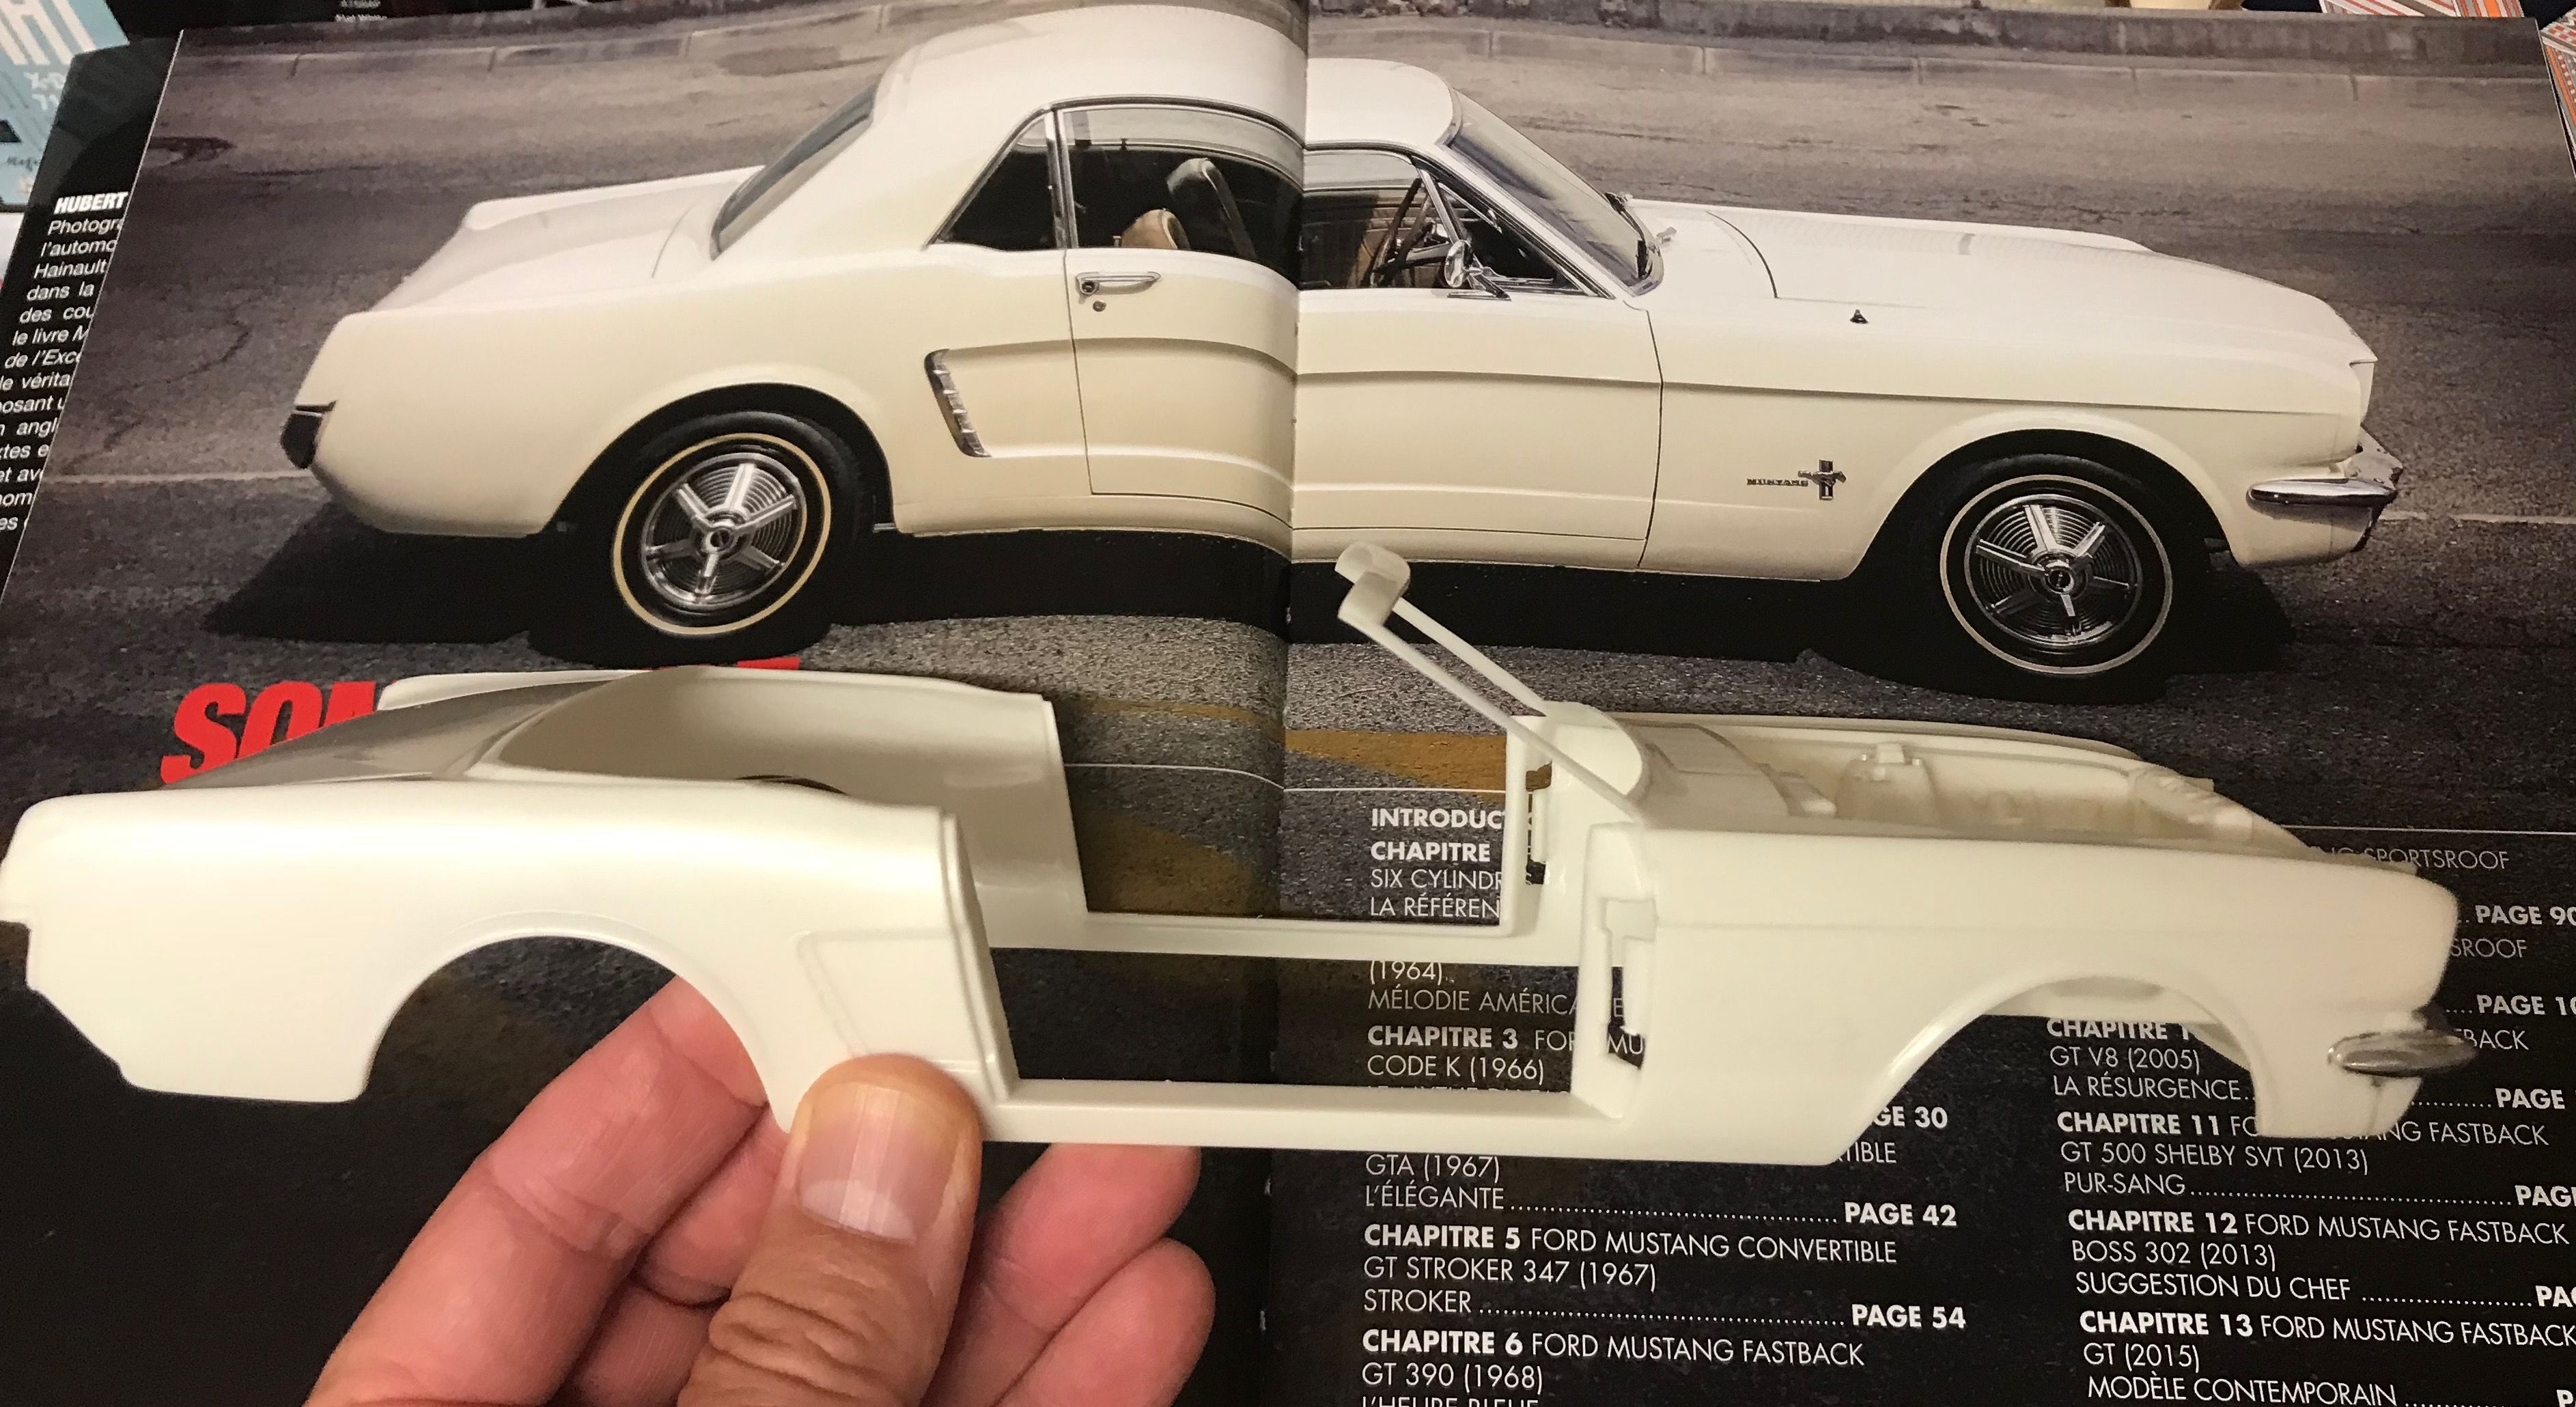 Olivier De St Raphs Content Page 4 1964 Ford Mustang Fastback I Will Try To Contact Hubert Hainault About That Because The Beautiful Coupe 1 2 Shown In His Book Seems Belong Someone